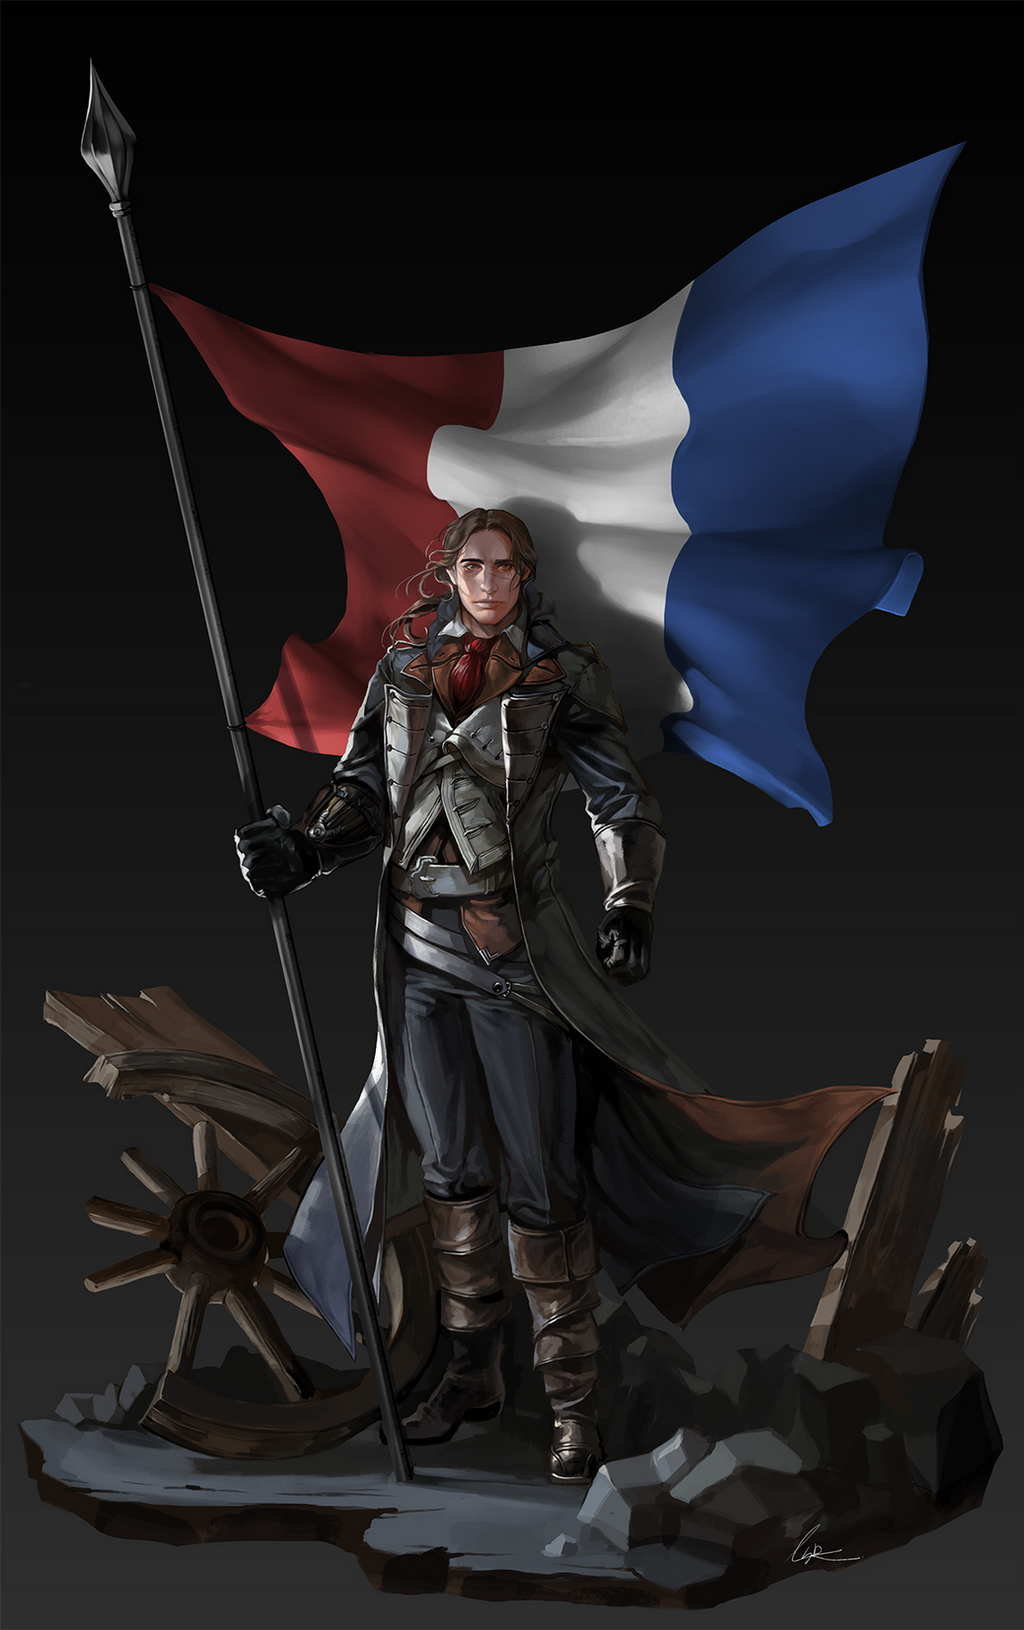 Assassin Creed Unity Fan Art By Leesoraxxx On Deviantart